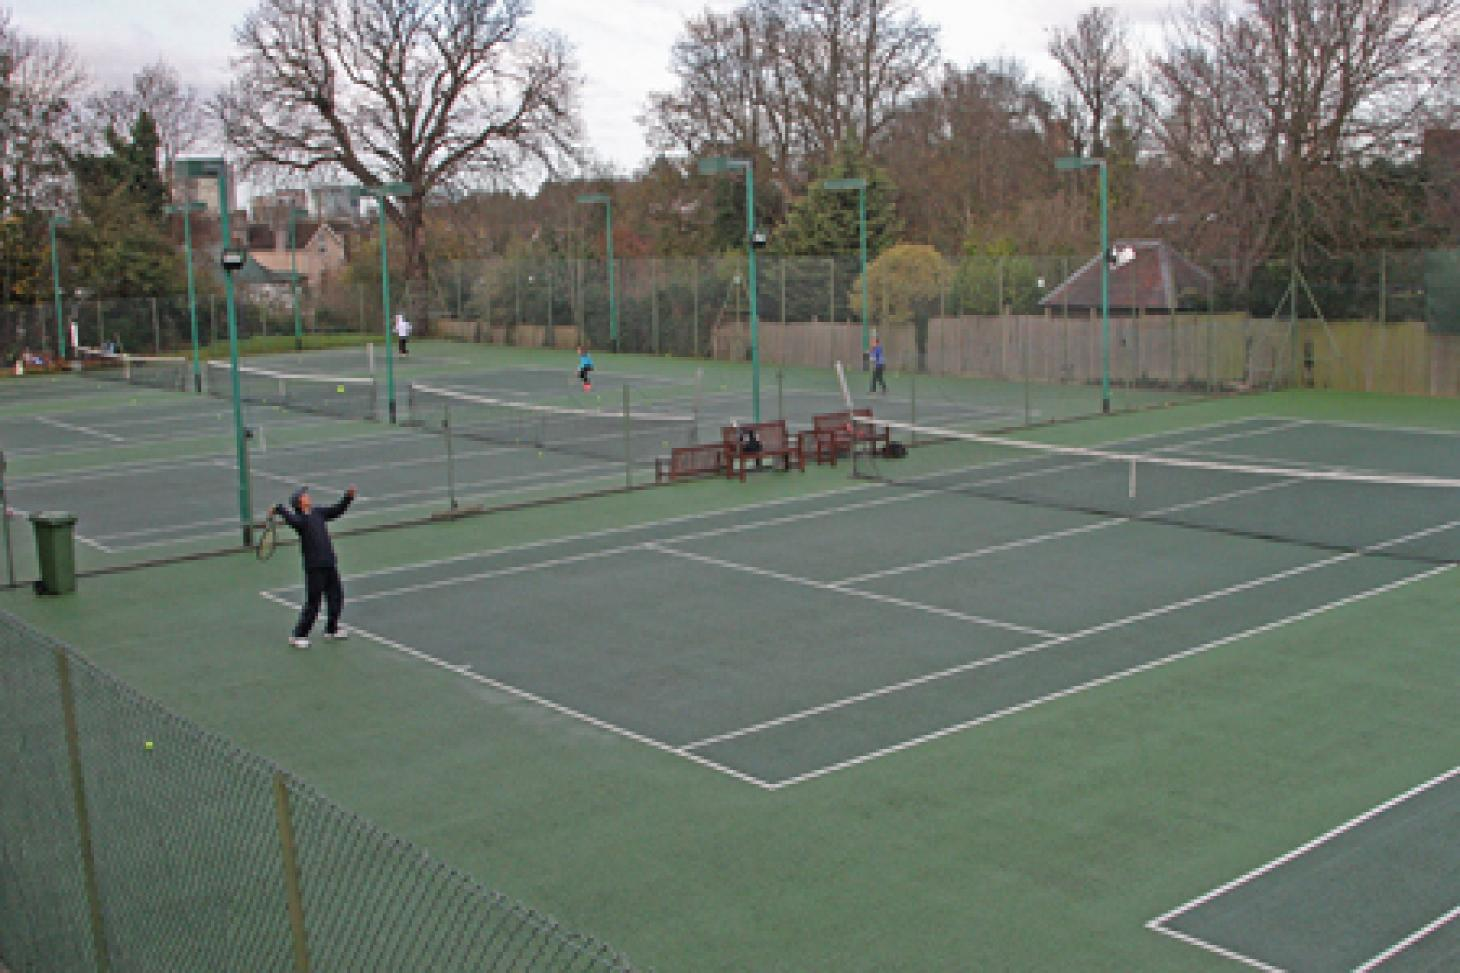 South Croydon Sports Club Outdoor | Hard (macadam) tennis court